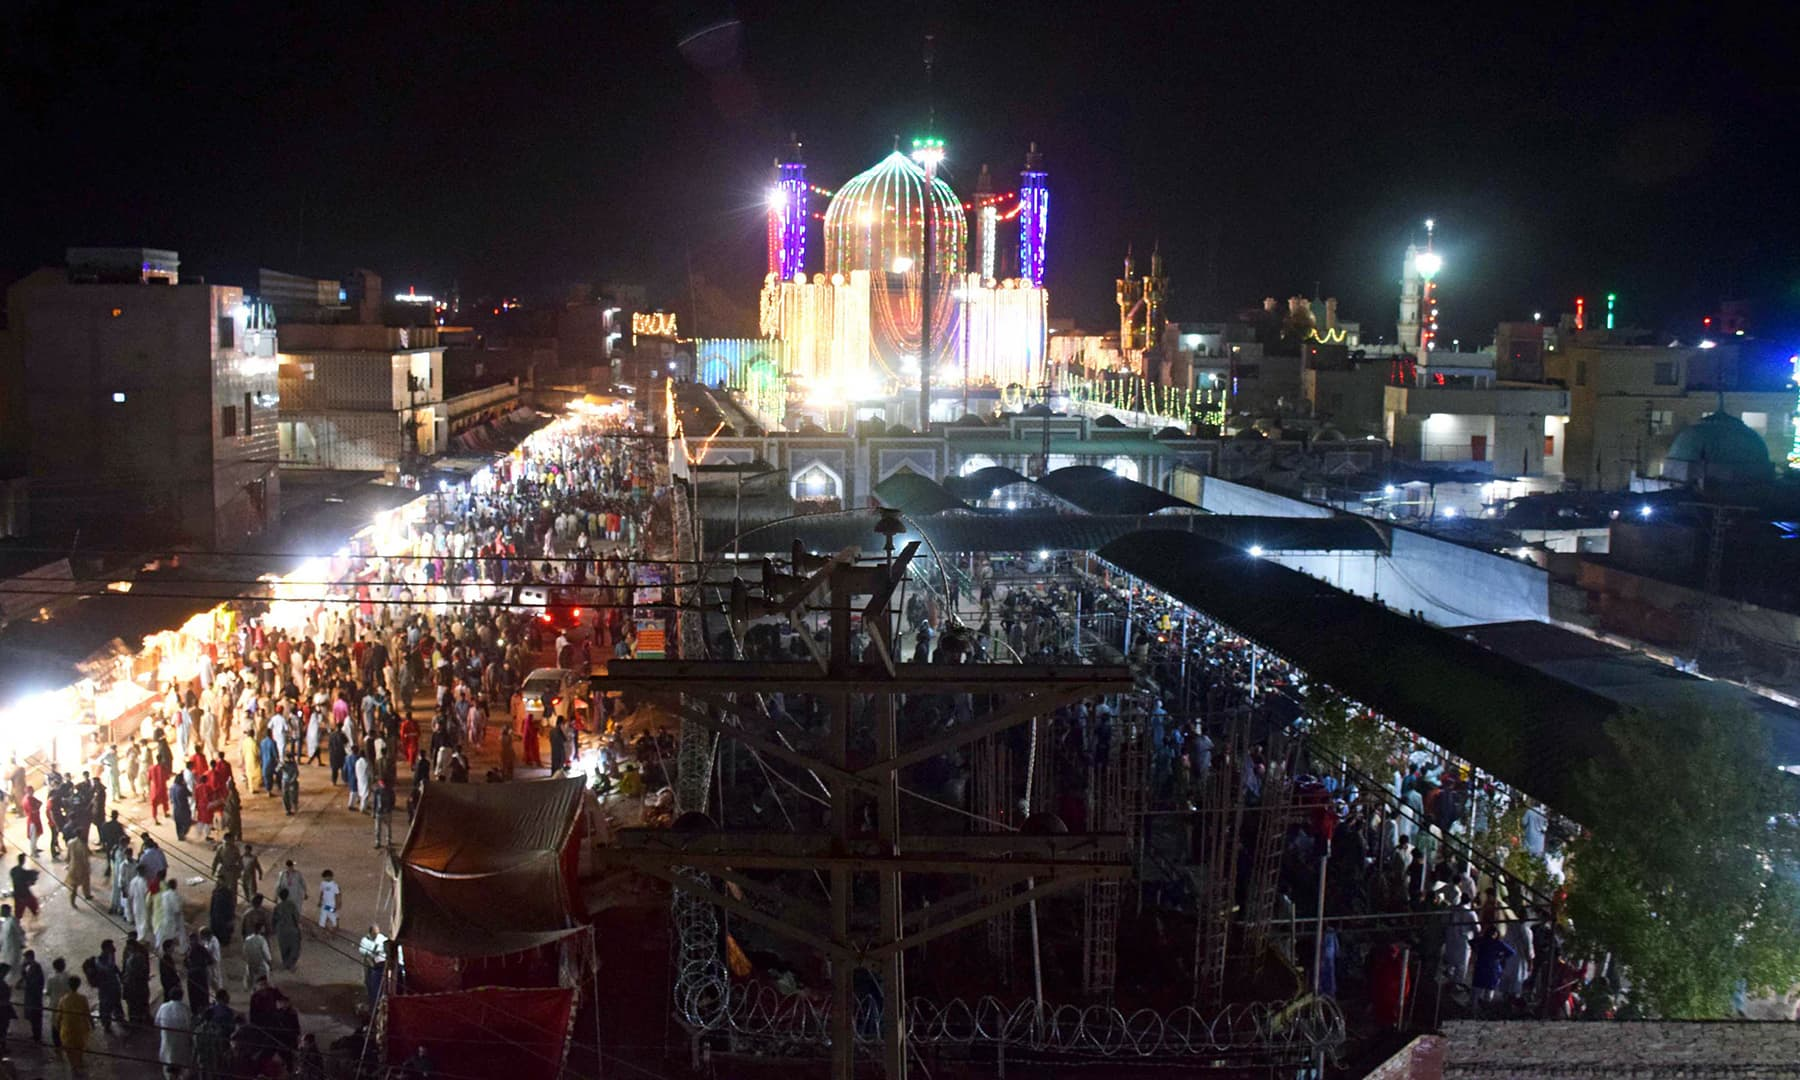 A night view of the dome of Qalandar's shrine from the golden gate side.